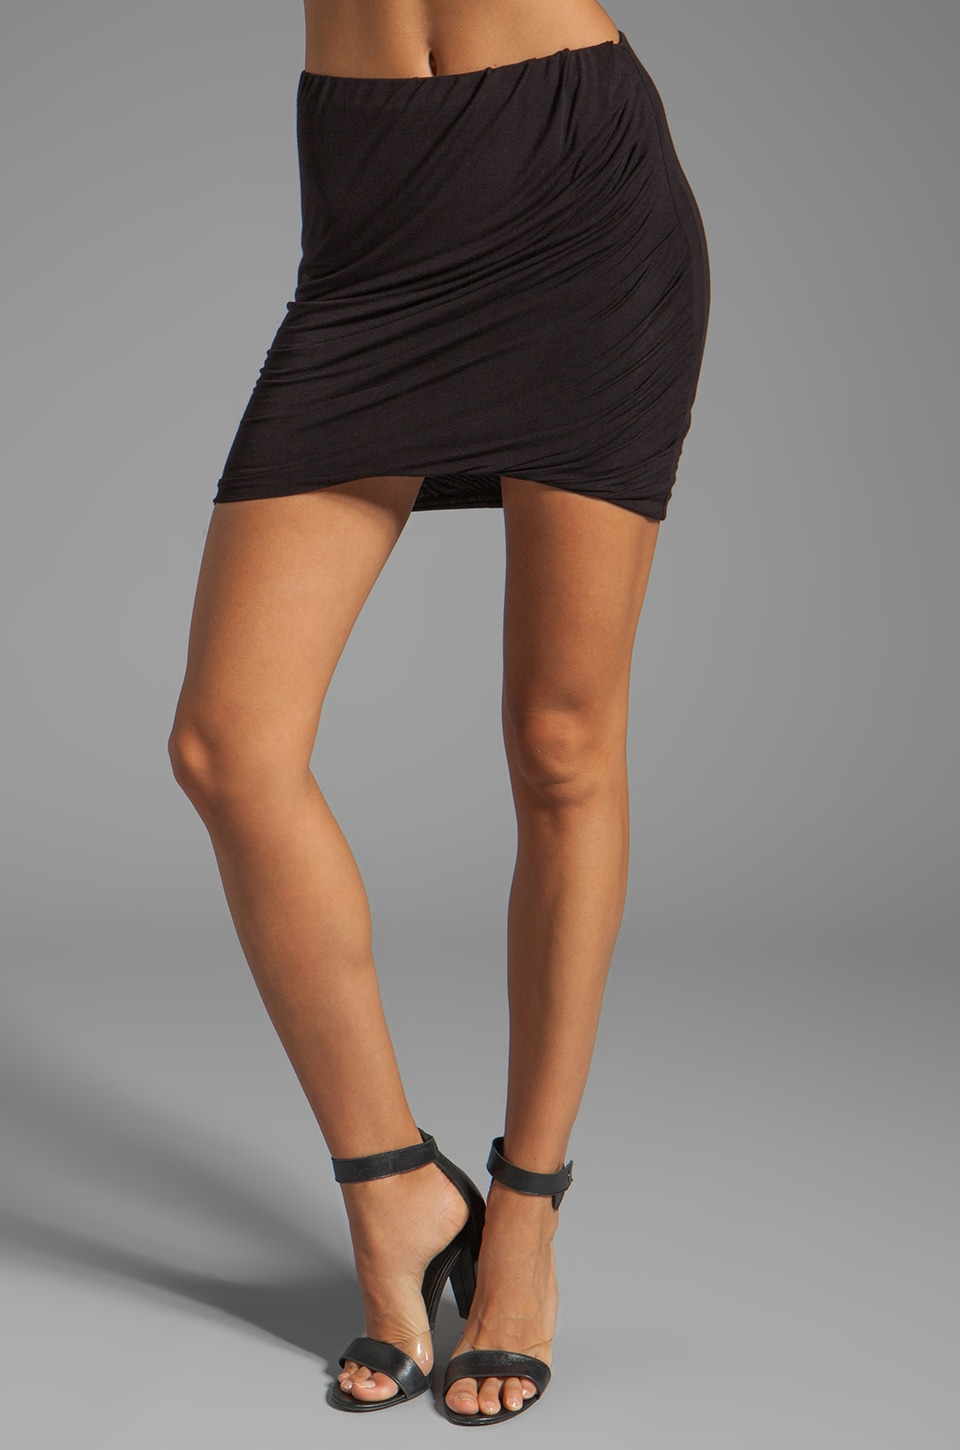 Bailey 44 Saffron Skirt in Black